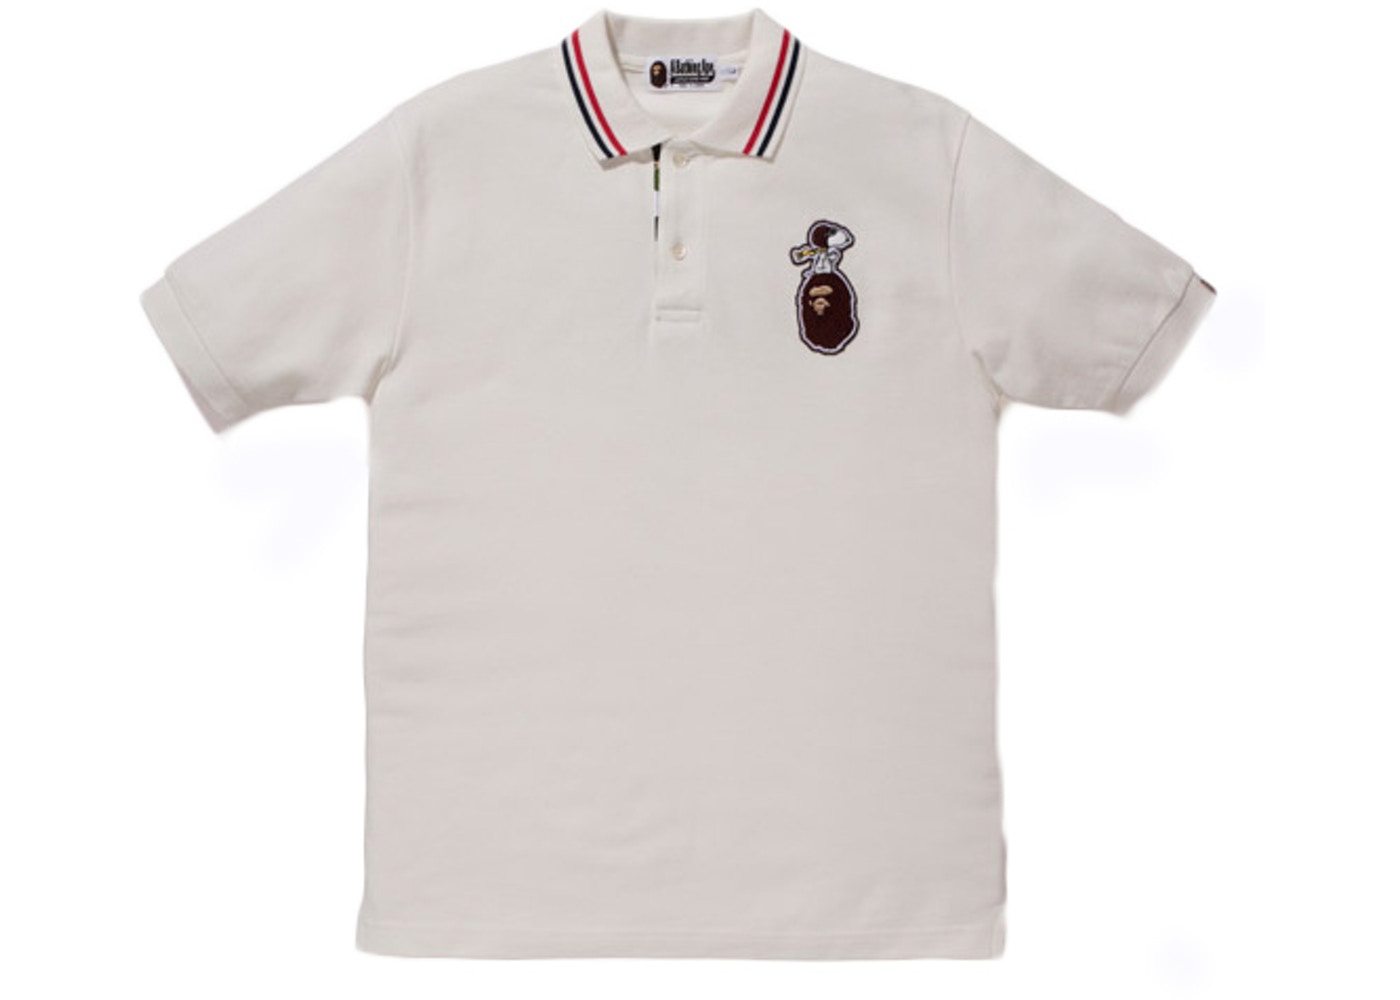 07d26b82 BAPE X Peanuts Flying Ace Snoopy On Apehead Embroidered Polo Shirt ...